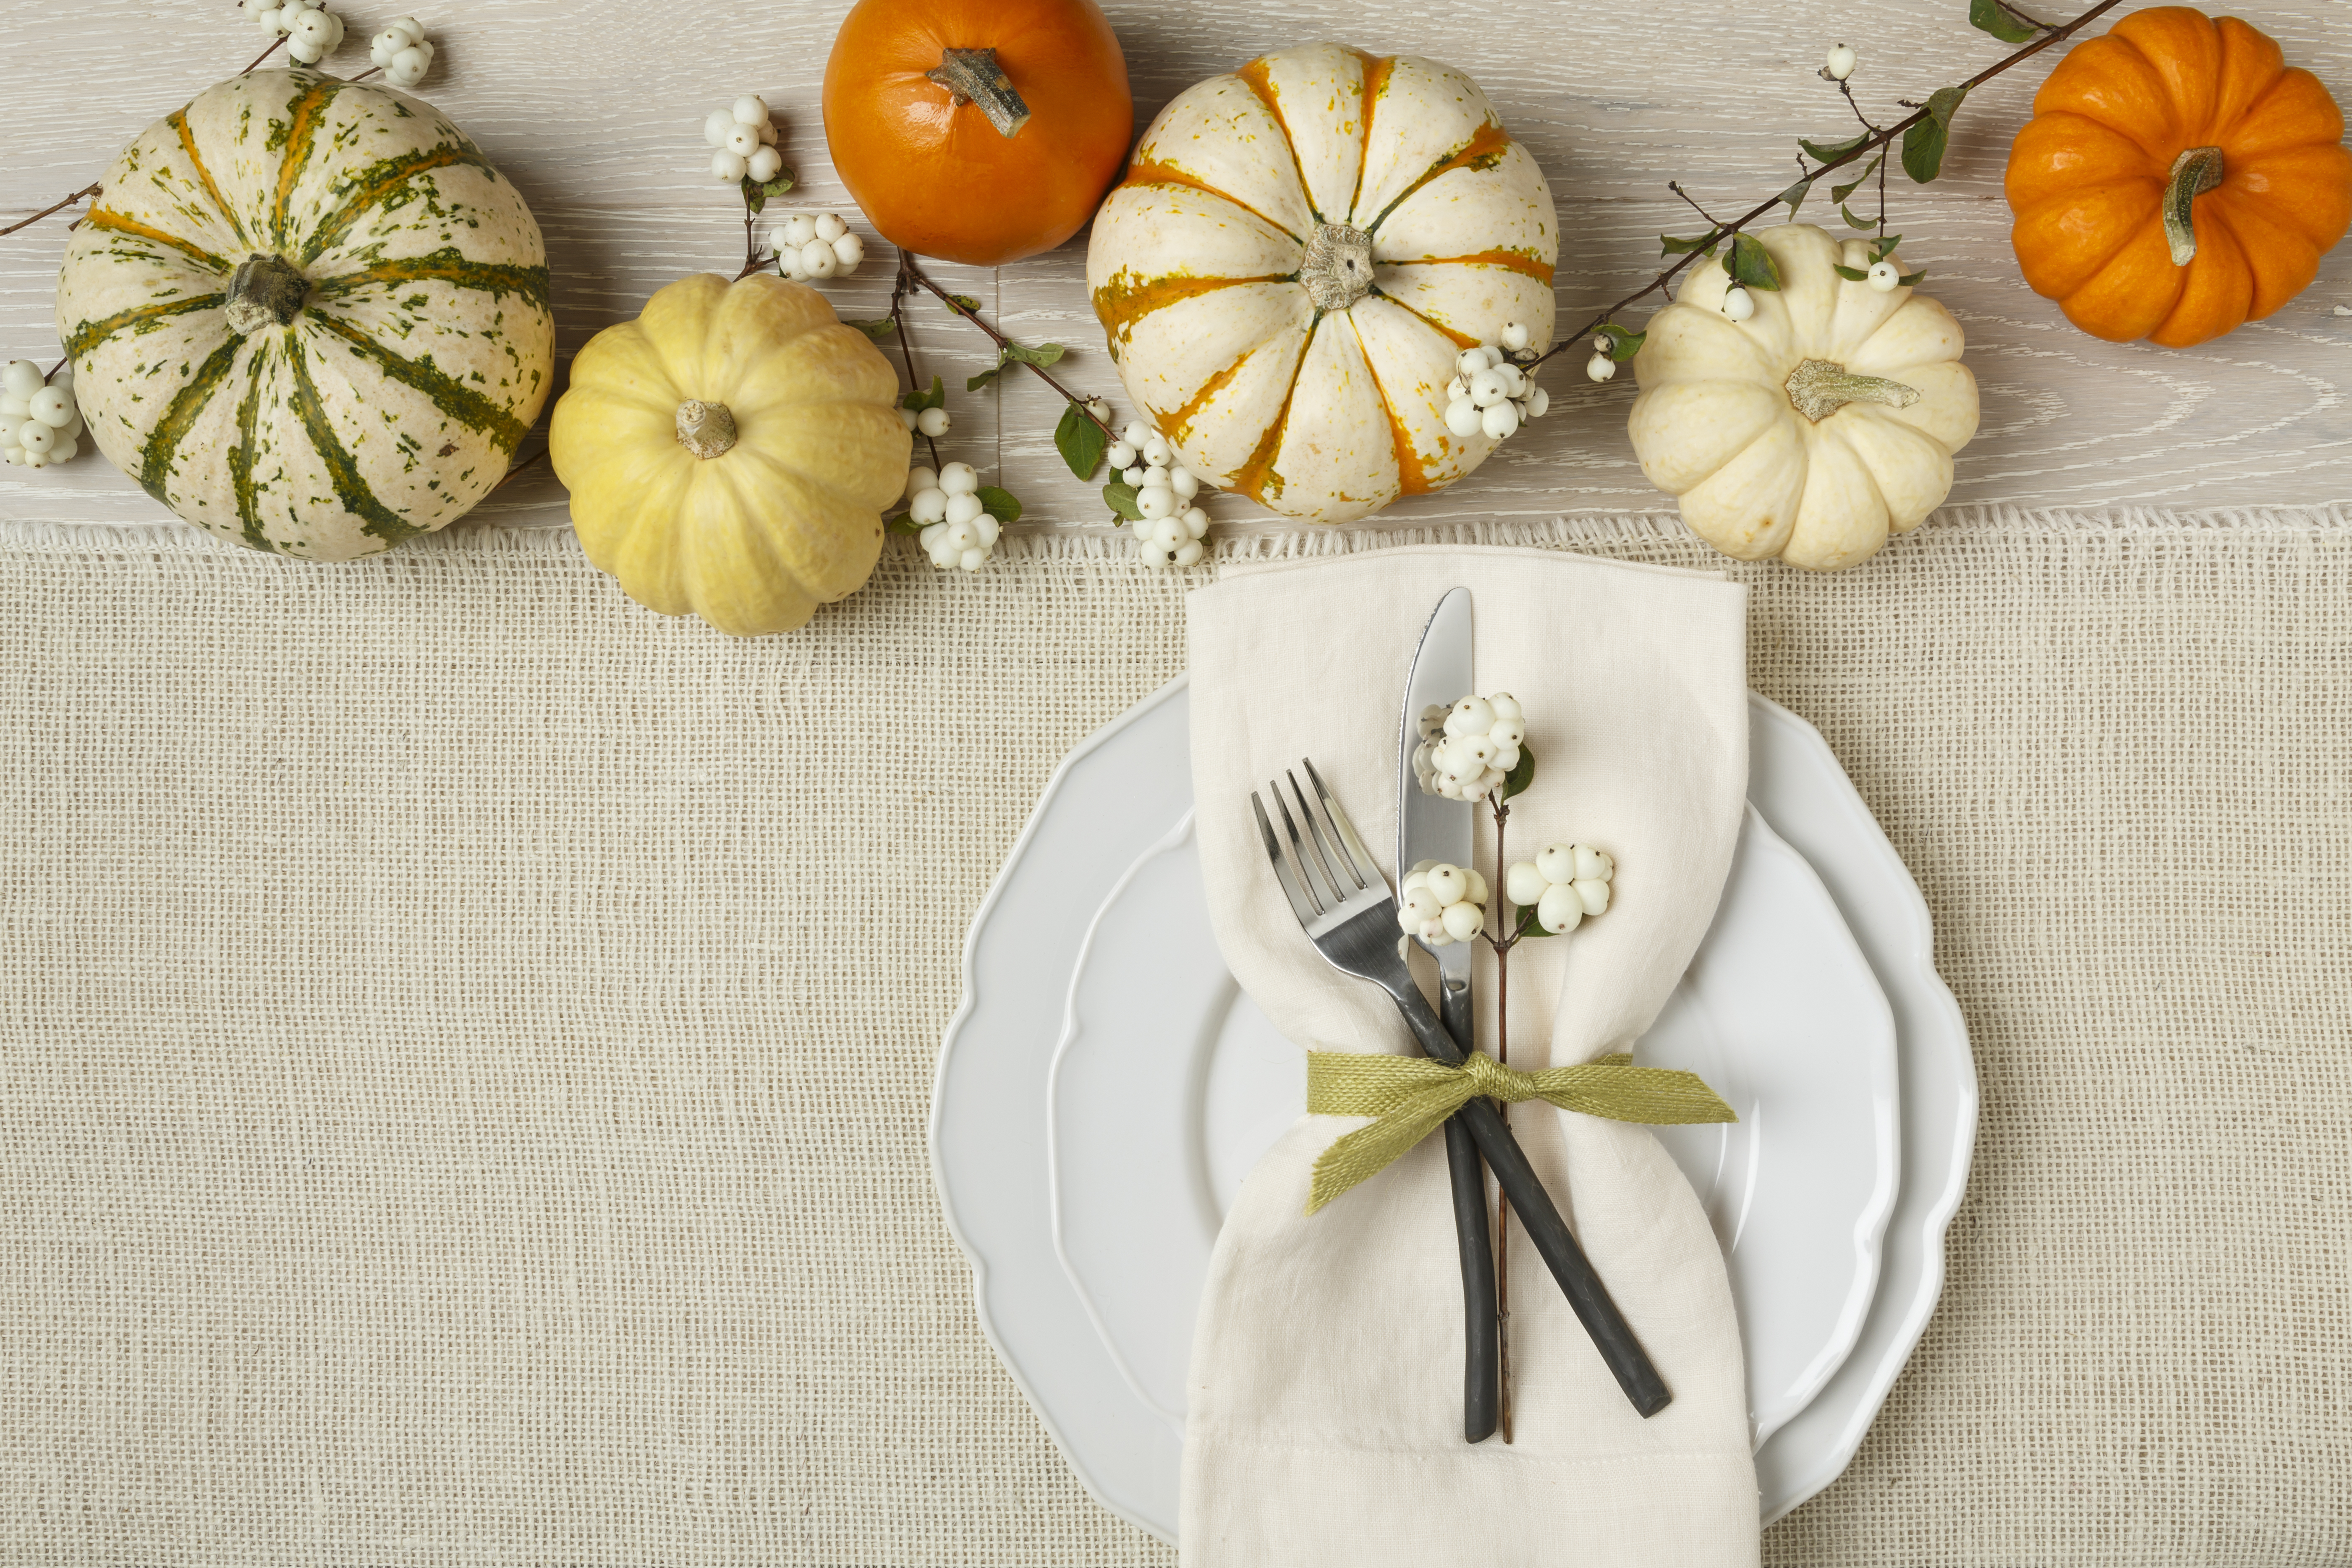 Set the table for a healthy thanksgiving